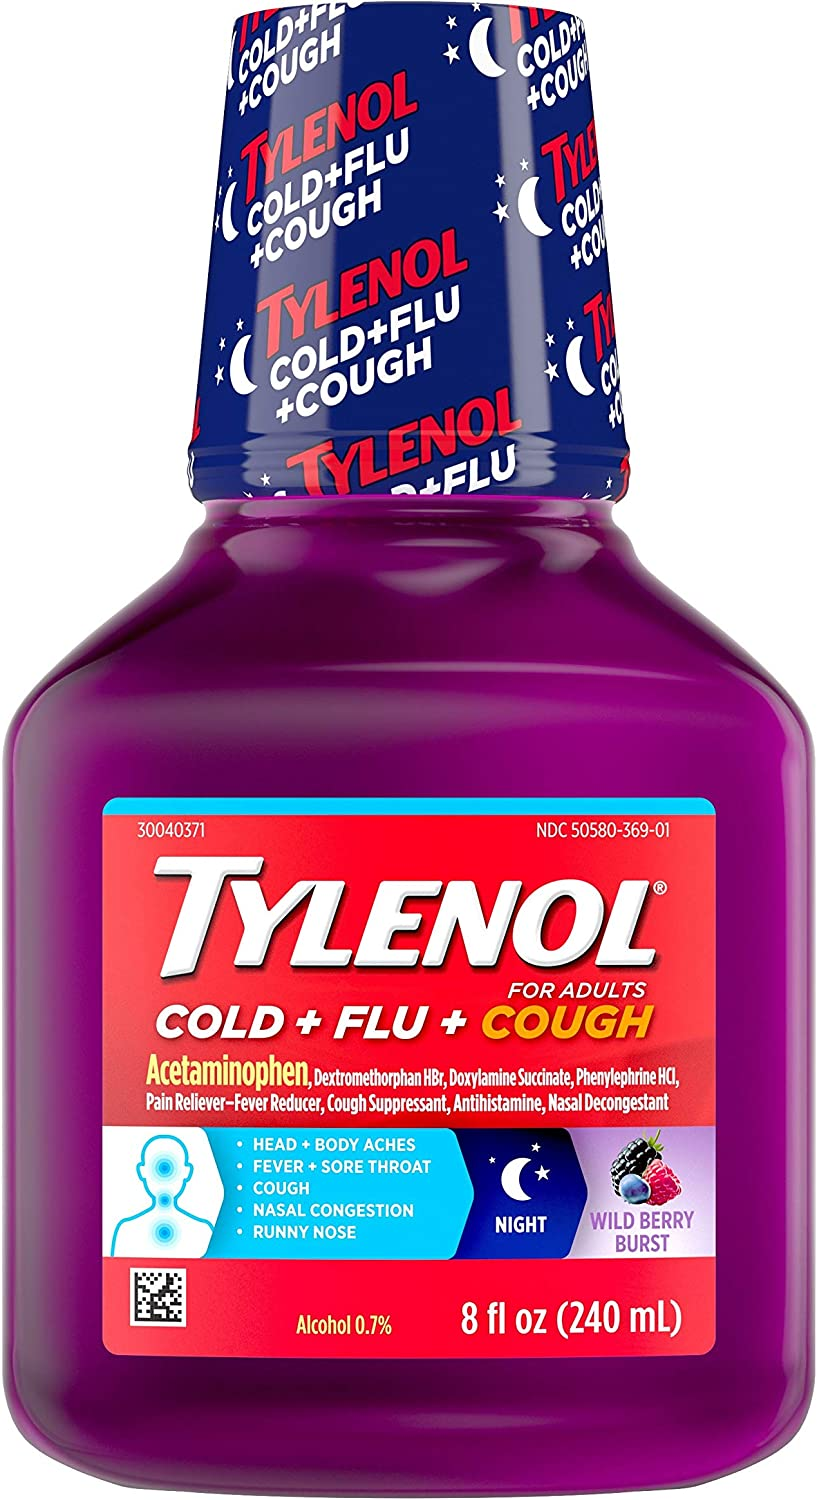 Tylenol Cold Flu + New popularity Free shipping anywhere in the nation Cough Night Medic Liquid